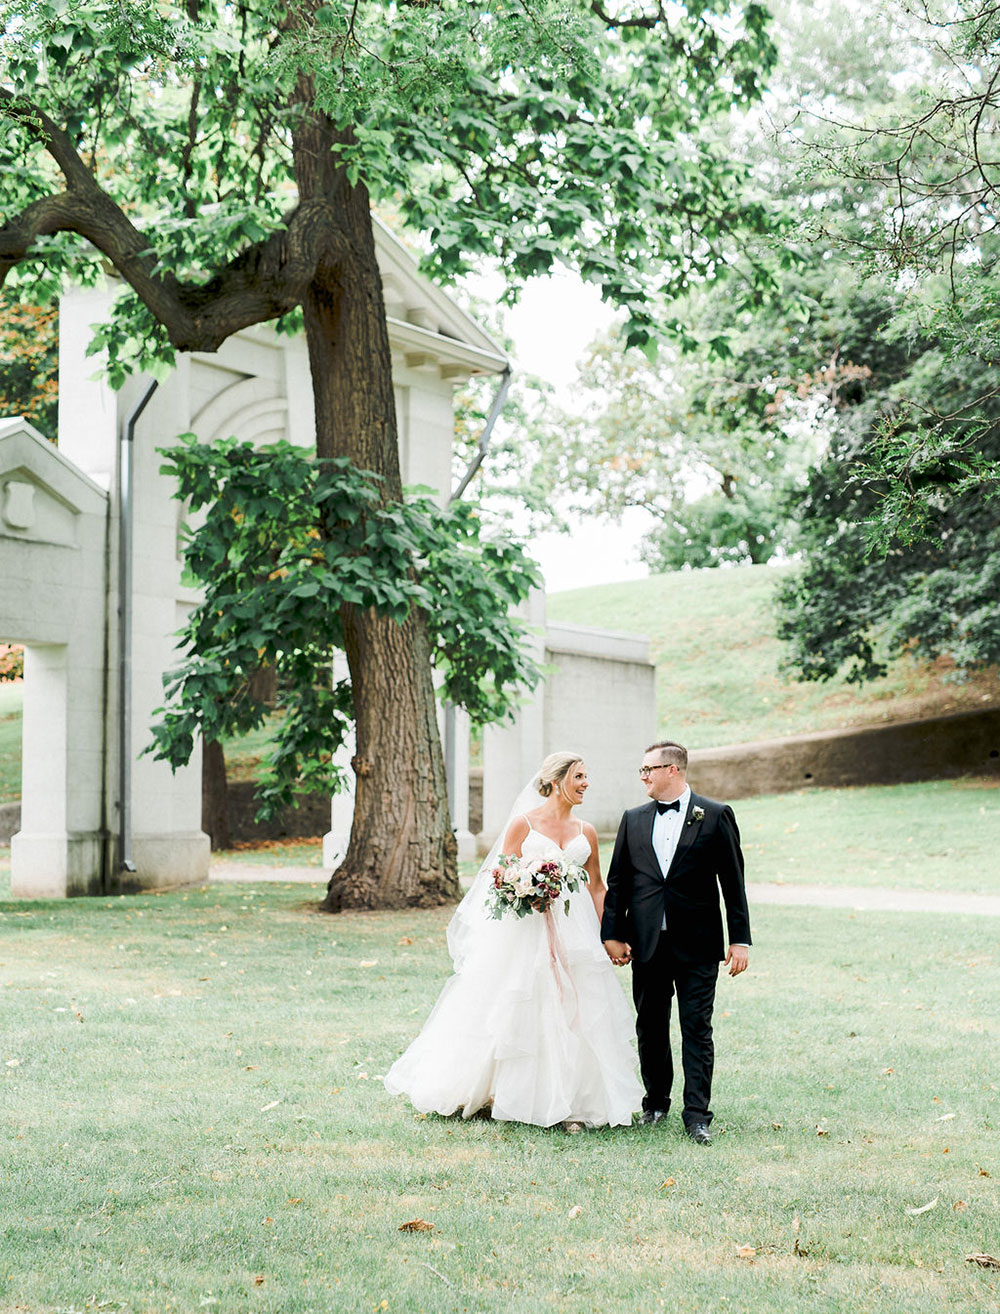 Art-Gallery-of-Hamilton-Wedding-Vineyard-Bride-photo-by-Destiny-Dawn-Photography-0020.JPG